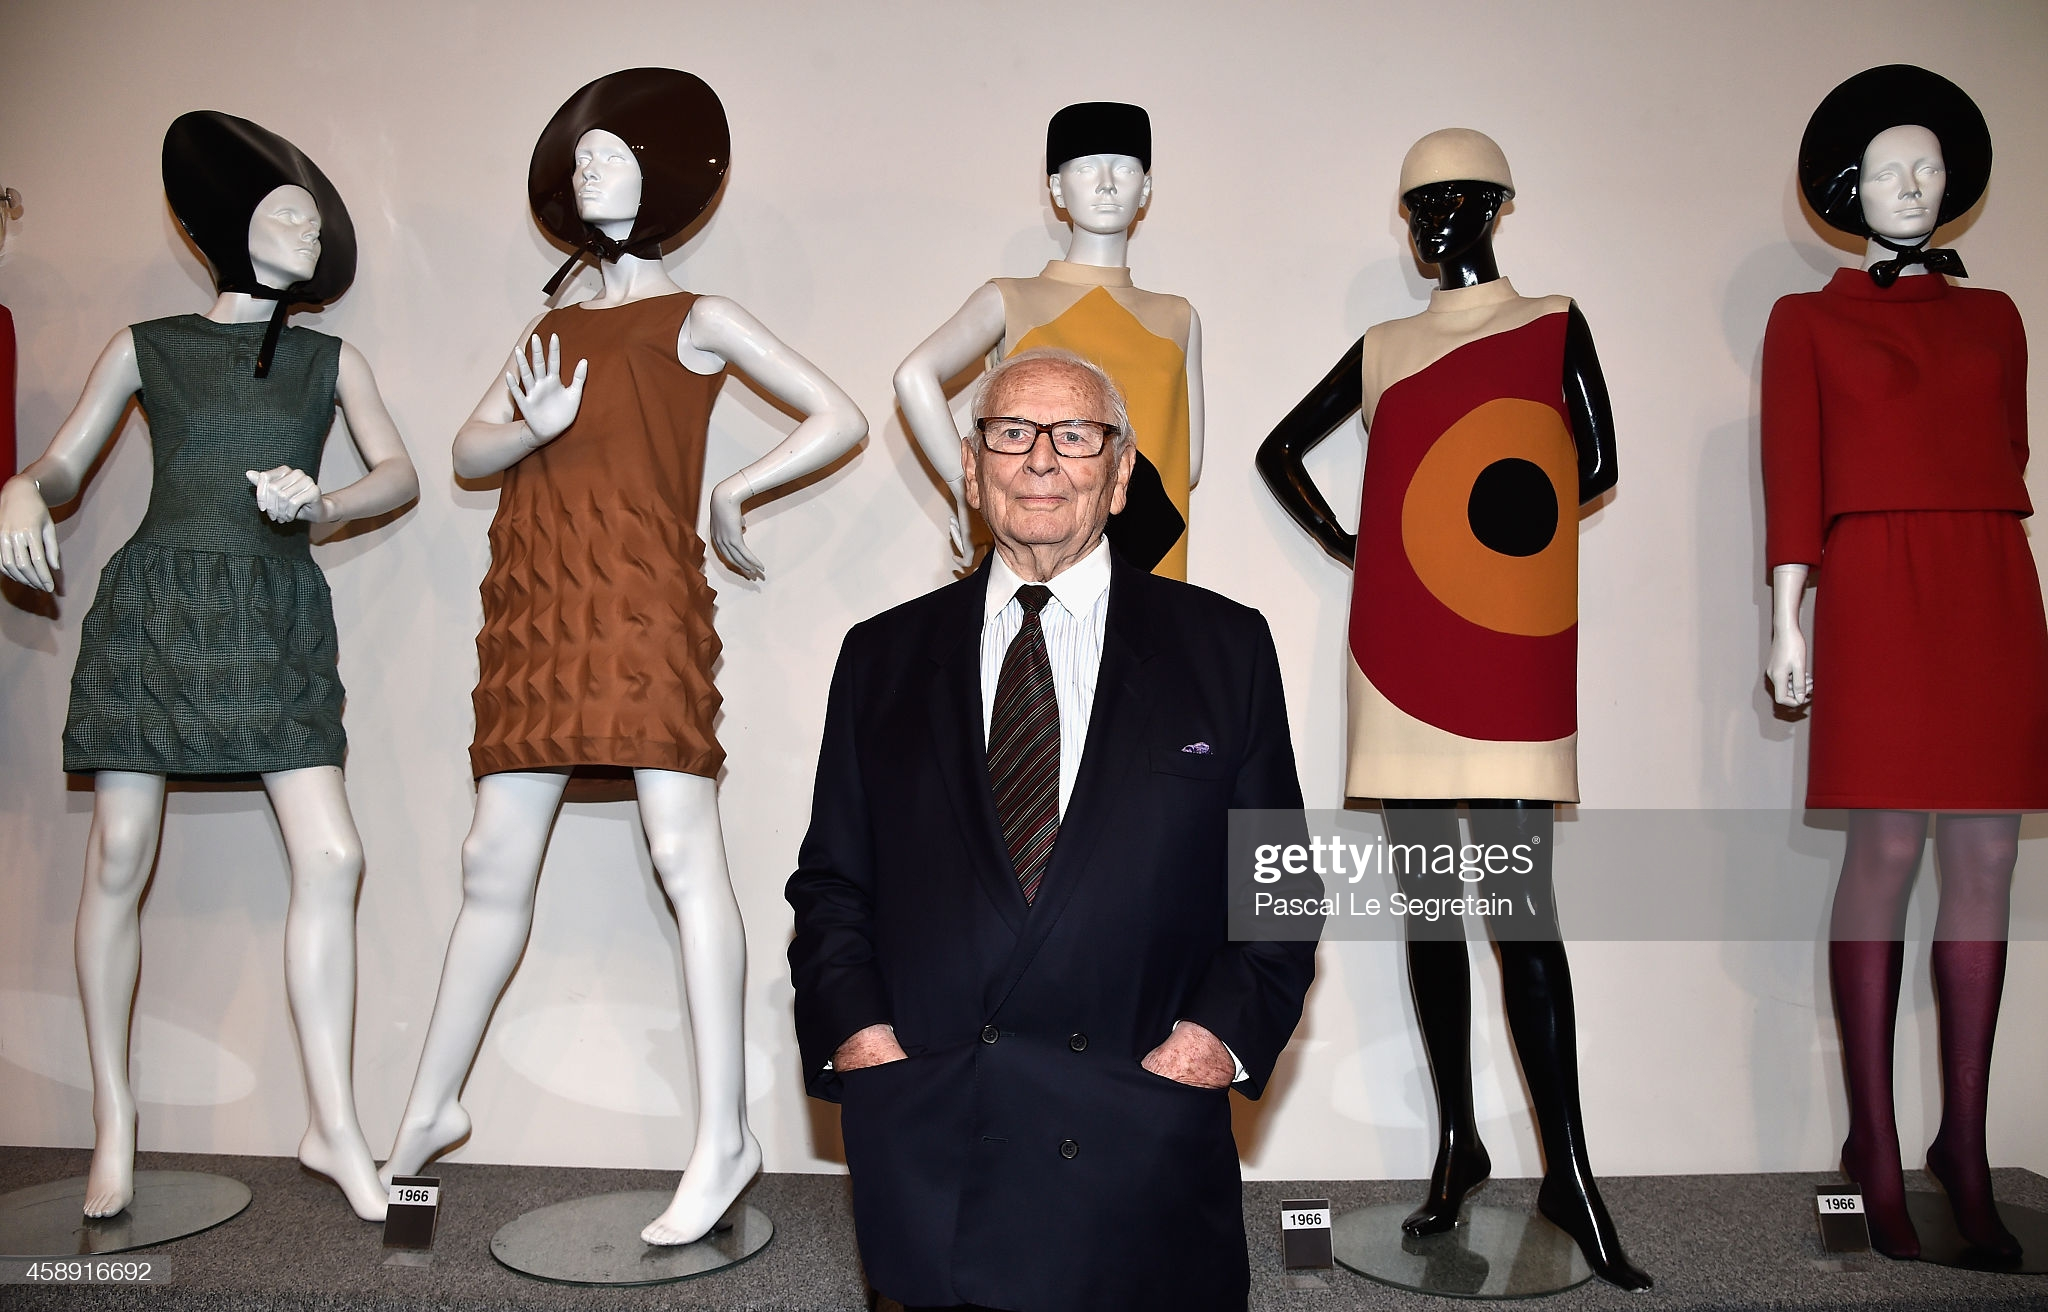 Pierre Cardin attends an Opening Cocktail at Musee Pierre Cardin on November 13, 2014 in Paris, France.  (Photo by Pascal Le Segretain/Getty Images)